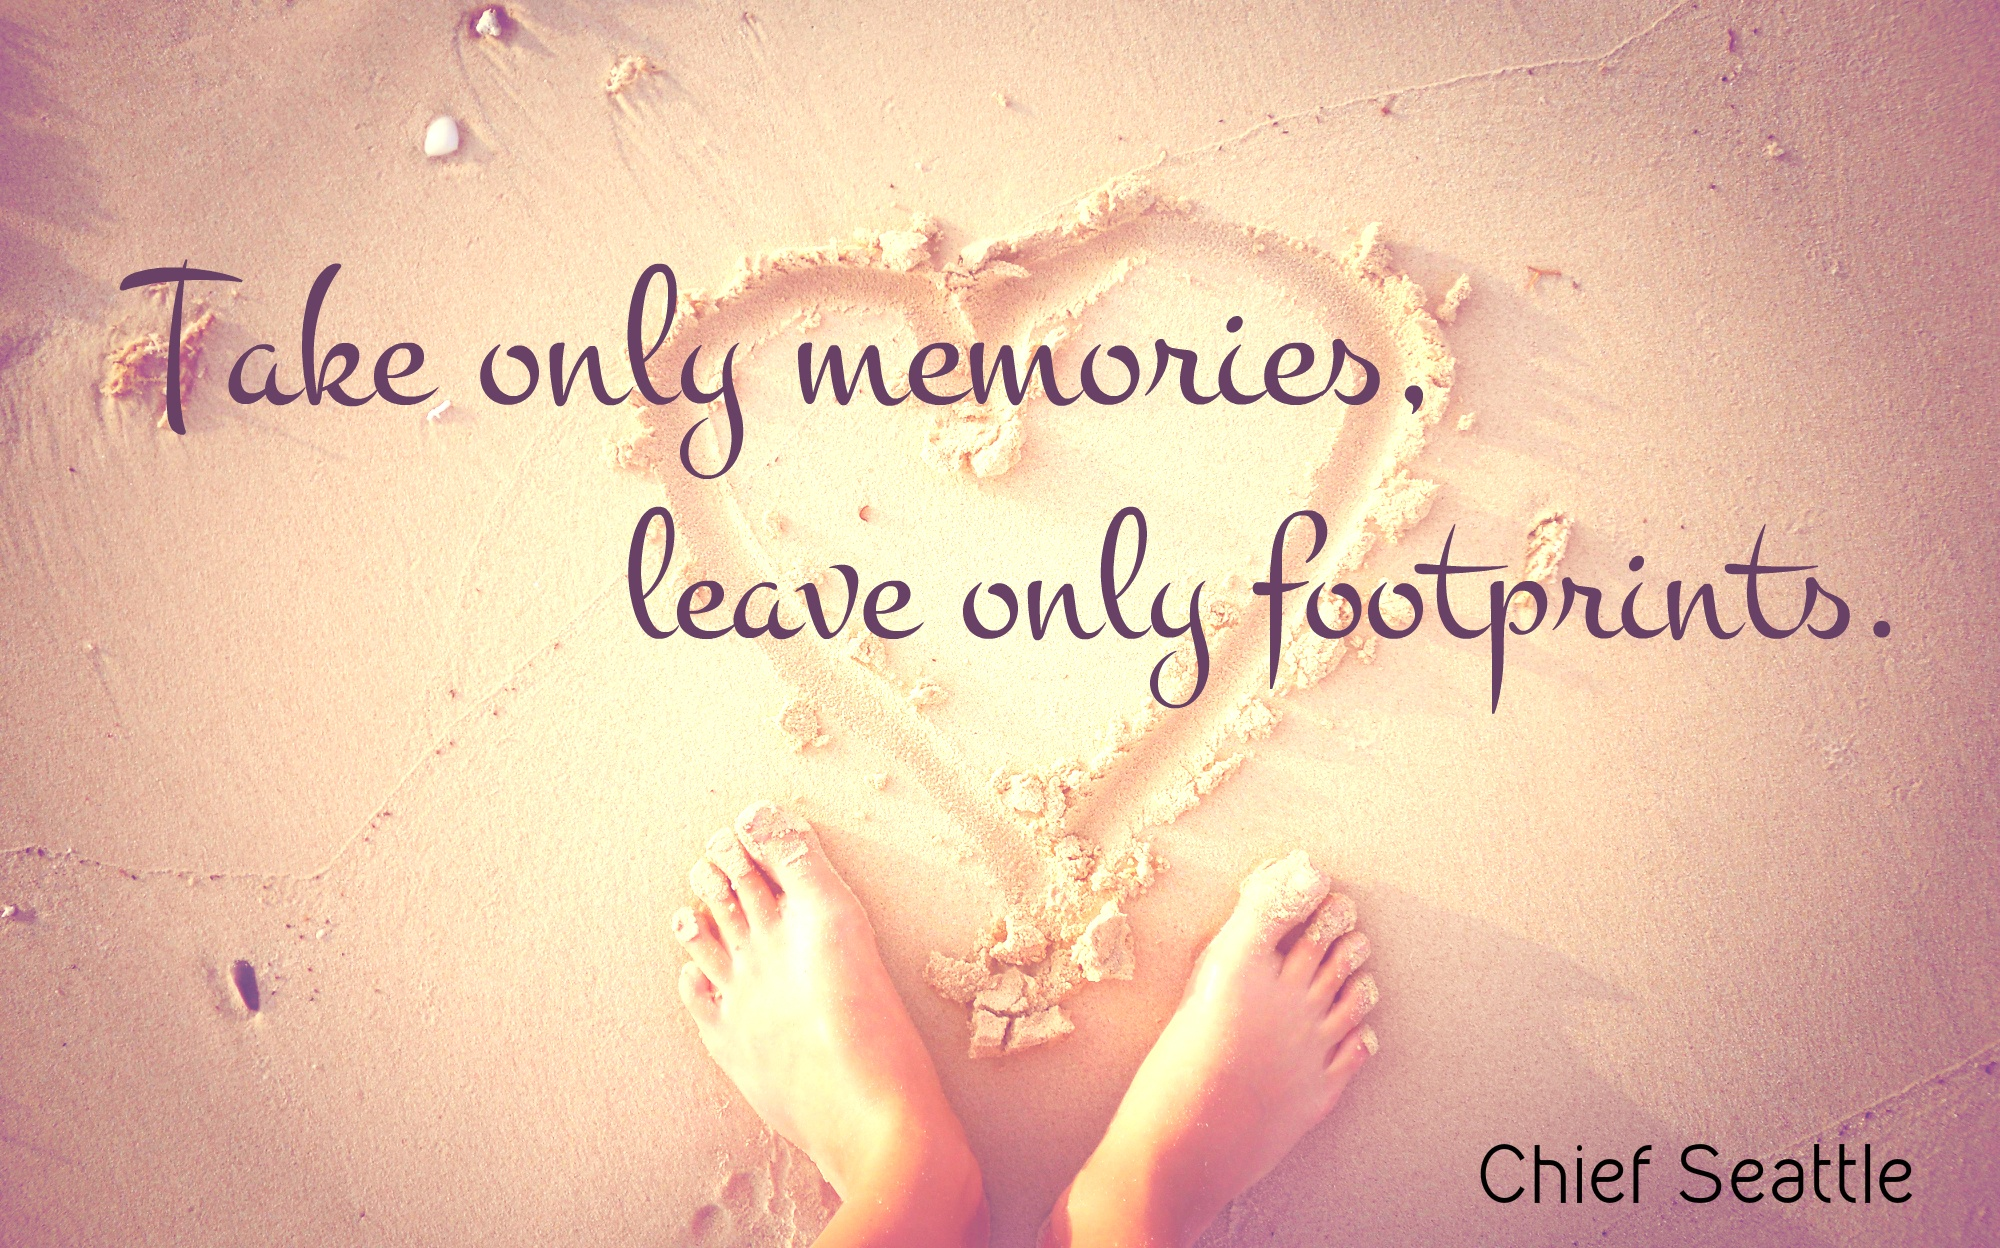 Take only memories, leave only footprints.